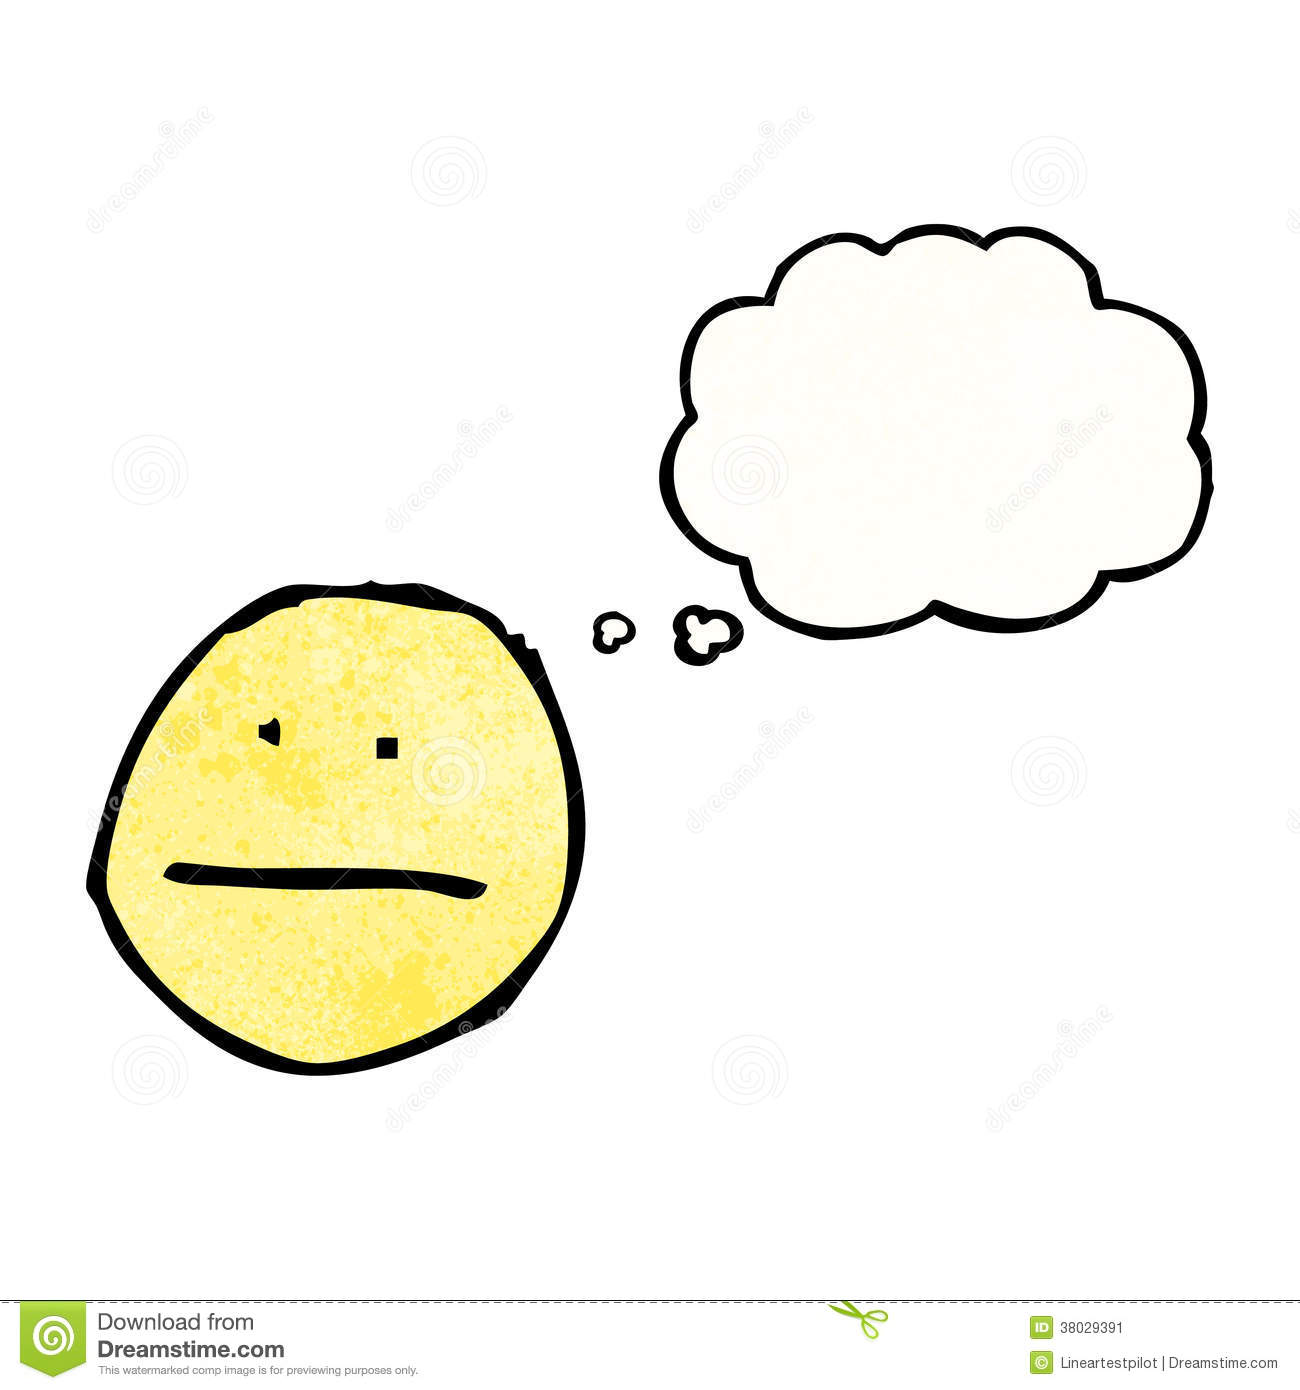 More similar stock images of cartoon thinking face symbol